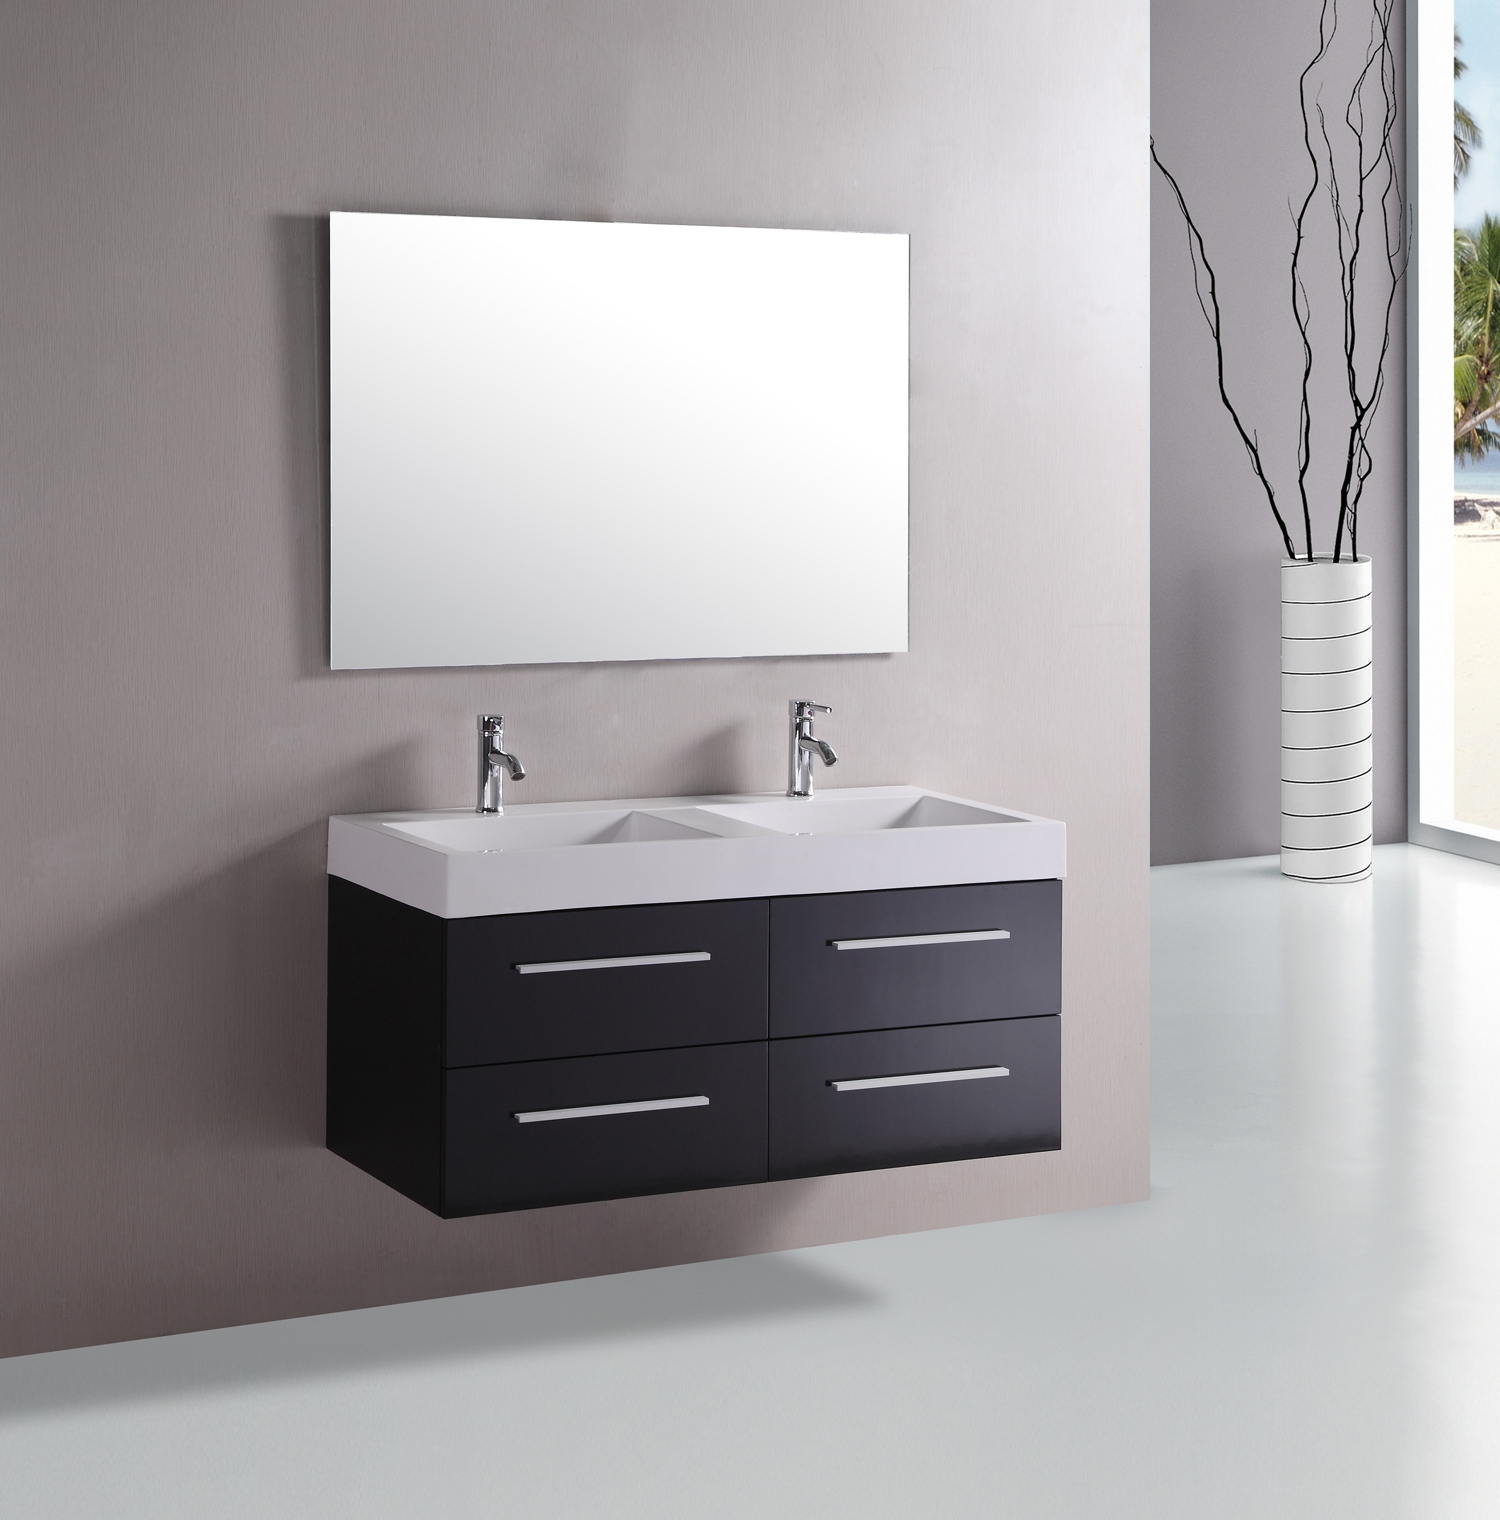 Floating Bathroom Vanity Without Sink